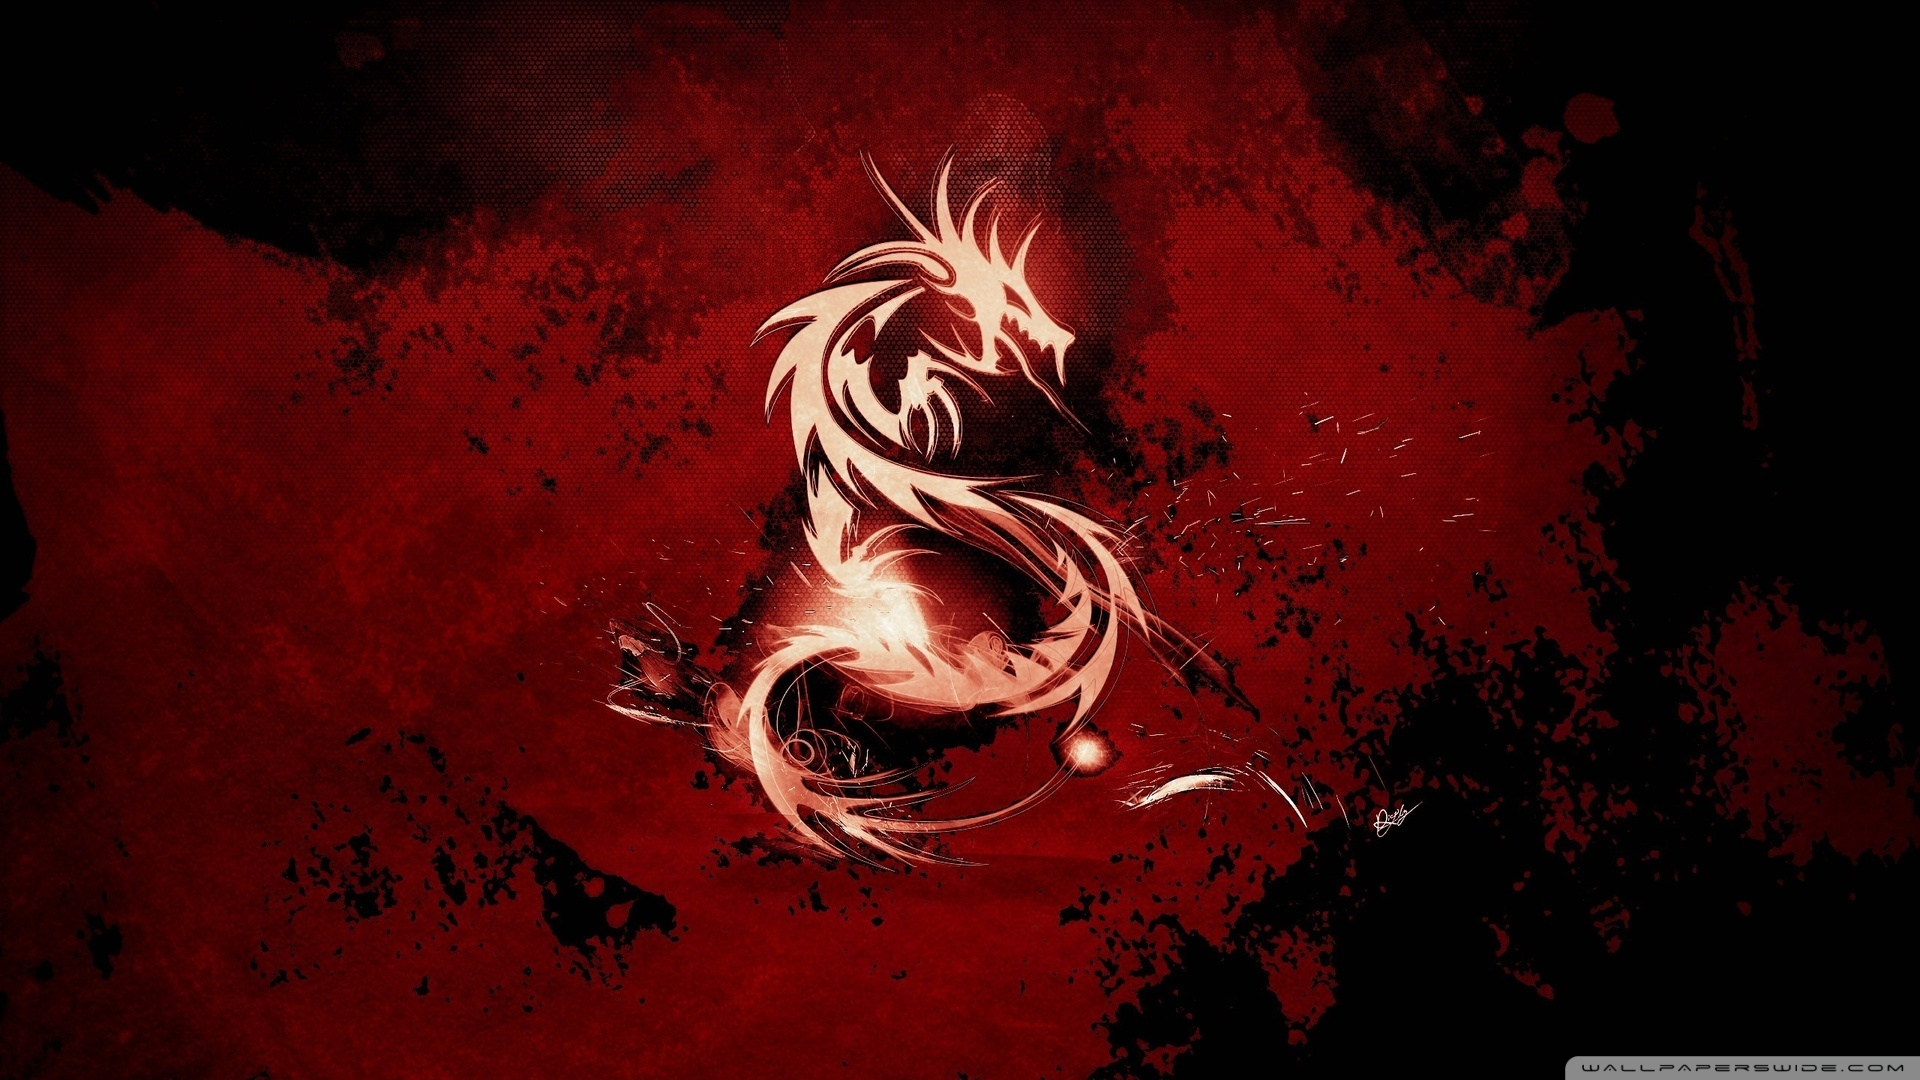 Blood Red Dragon Wallpaper 1920x1080 Blood, Red, Dragon